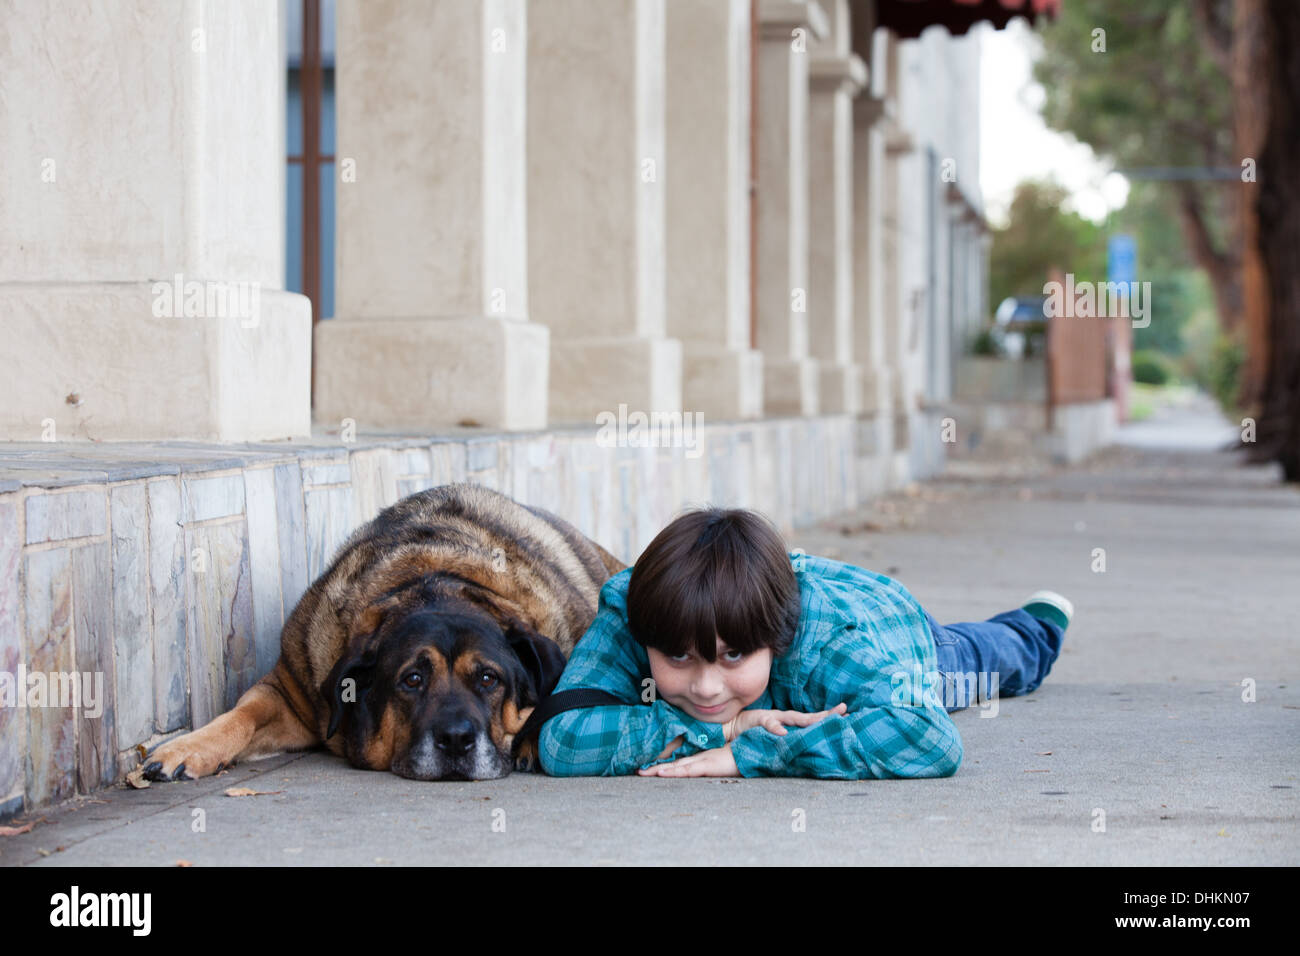 A  cute 10 year old boy and his dog lying down on the sidewalk - Stock Image